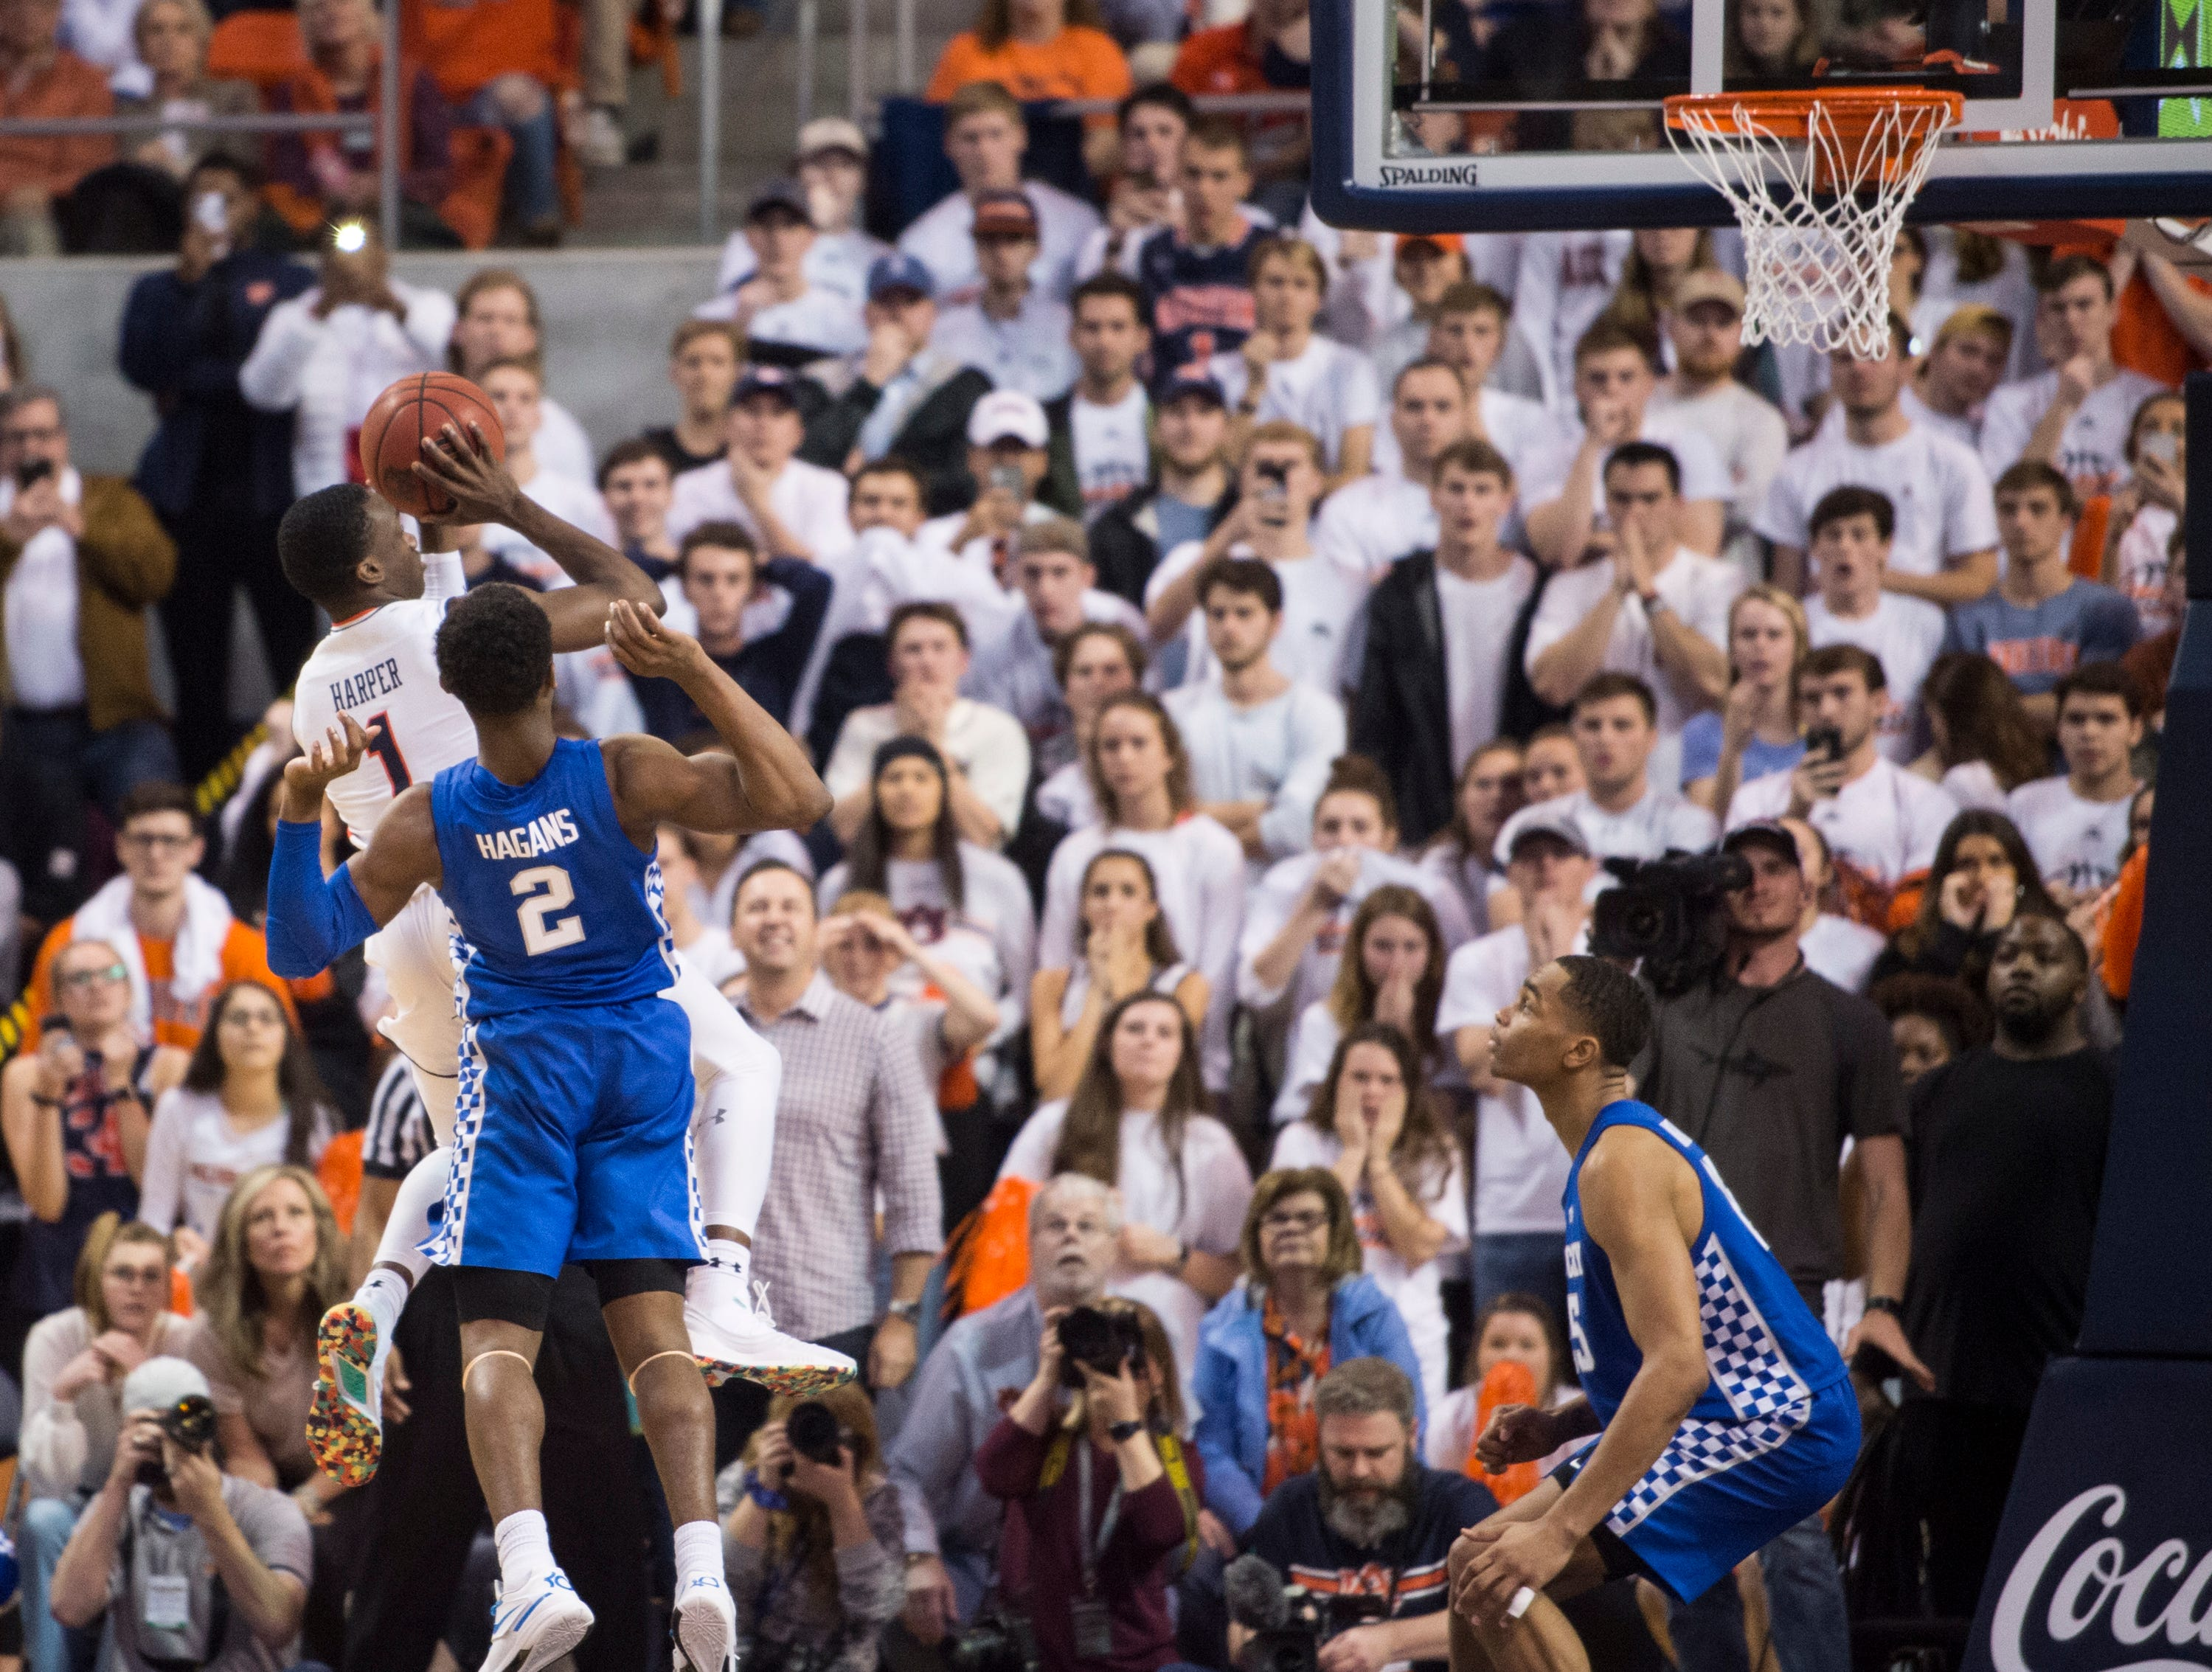 Auburn guard Jared Harper (1) misses a last chance shot in the final seconds of the game at Auburn Arena in Auburn, Ala., on Saturday, Jan. 19, 2019. Kentucky defeats Auburn 82-80.